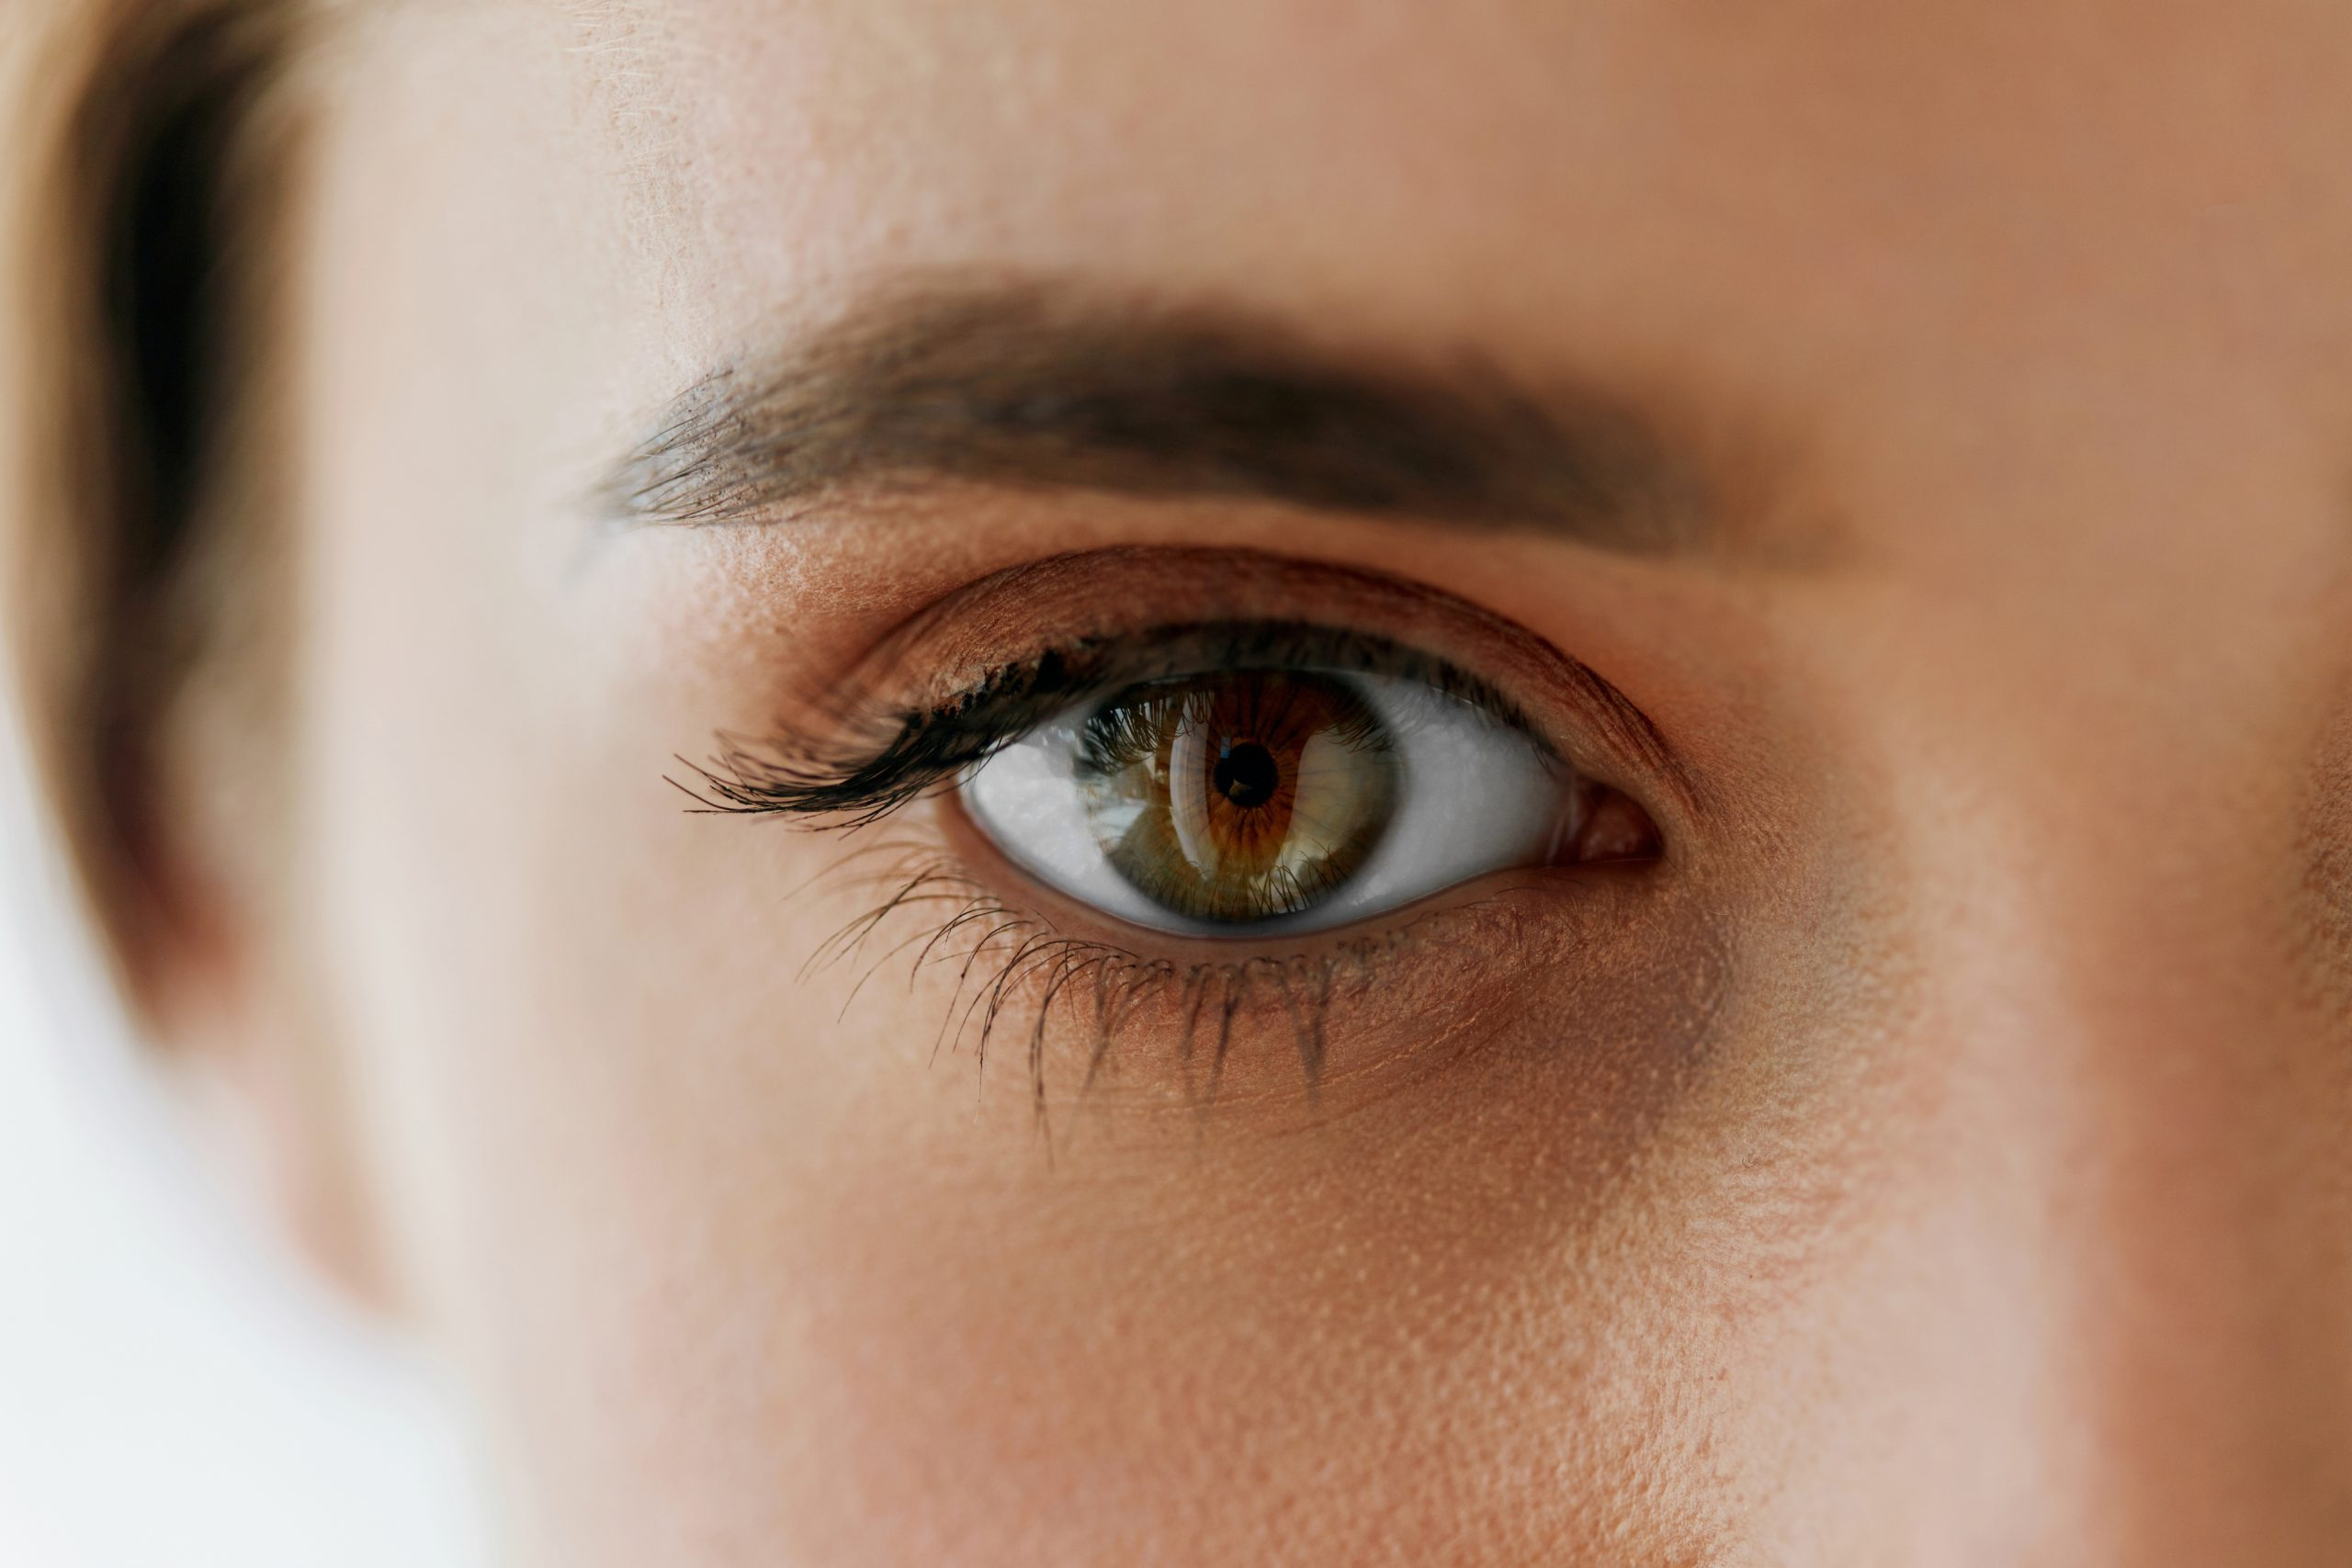 Say Goodbye to Droopy Eyelids! 3 Non-surgical Treatments to Lift the Eyes and Brows